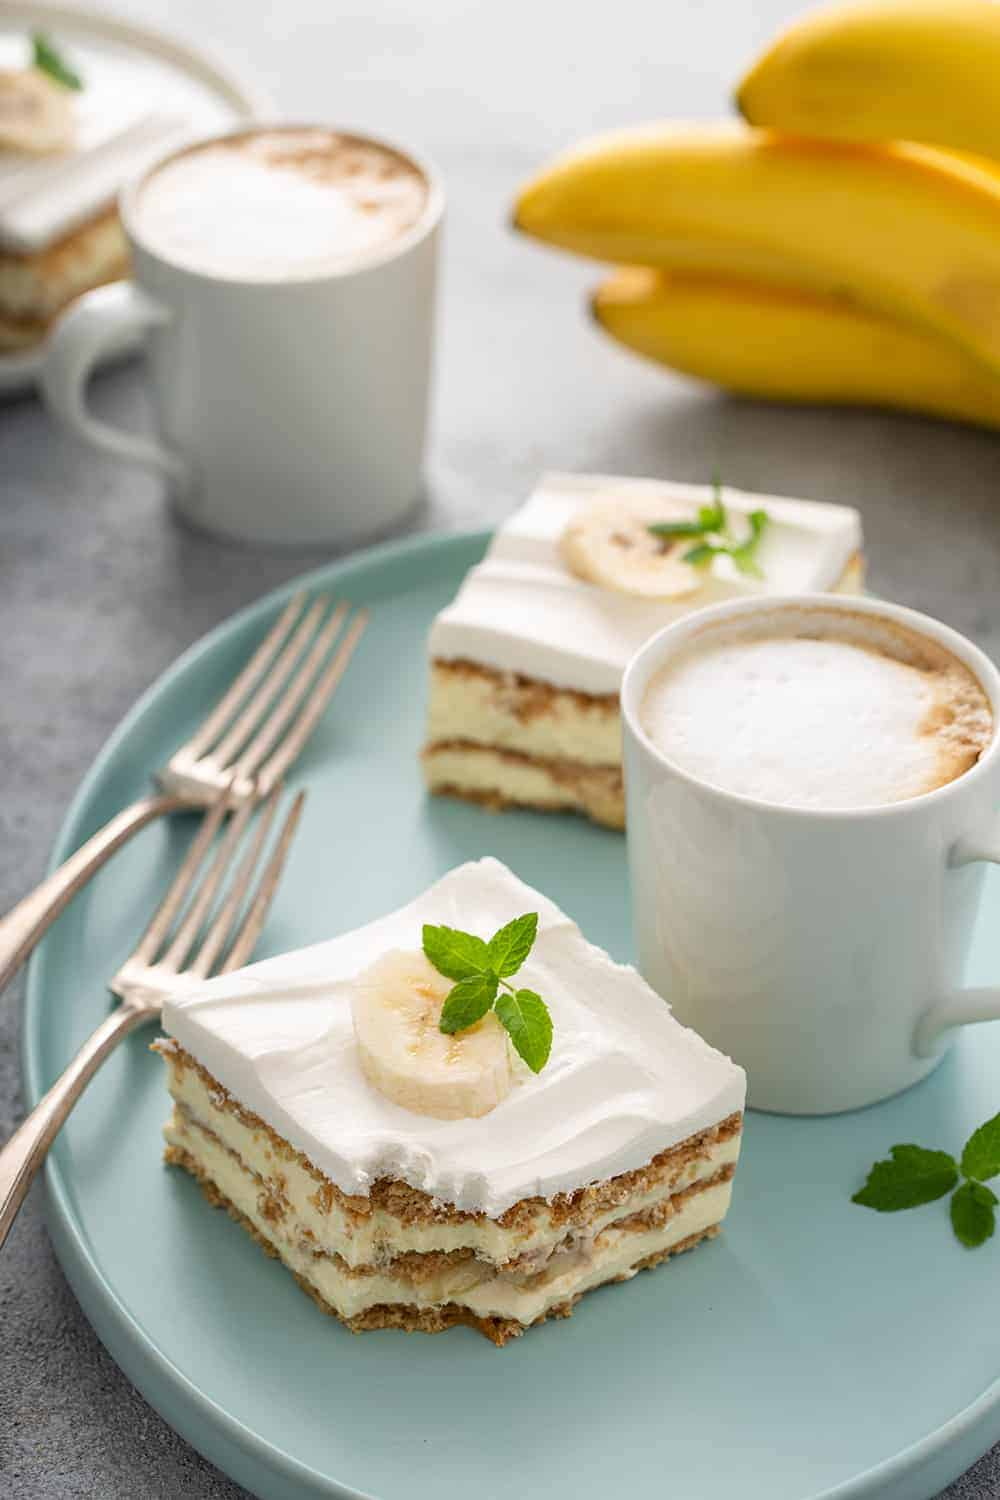 Two slices of banana eclair cake next to a latte and two forks on a blue platter, with another latte and a bunch of bananas in the background